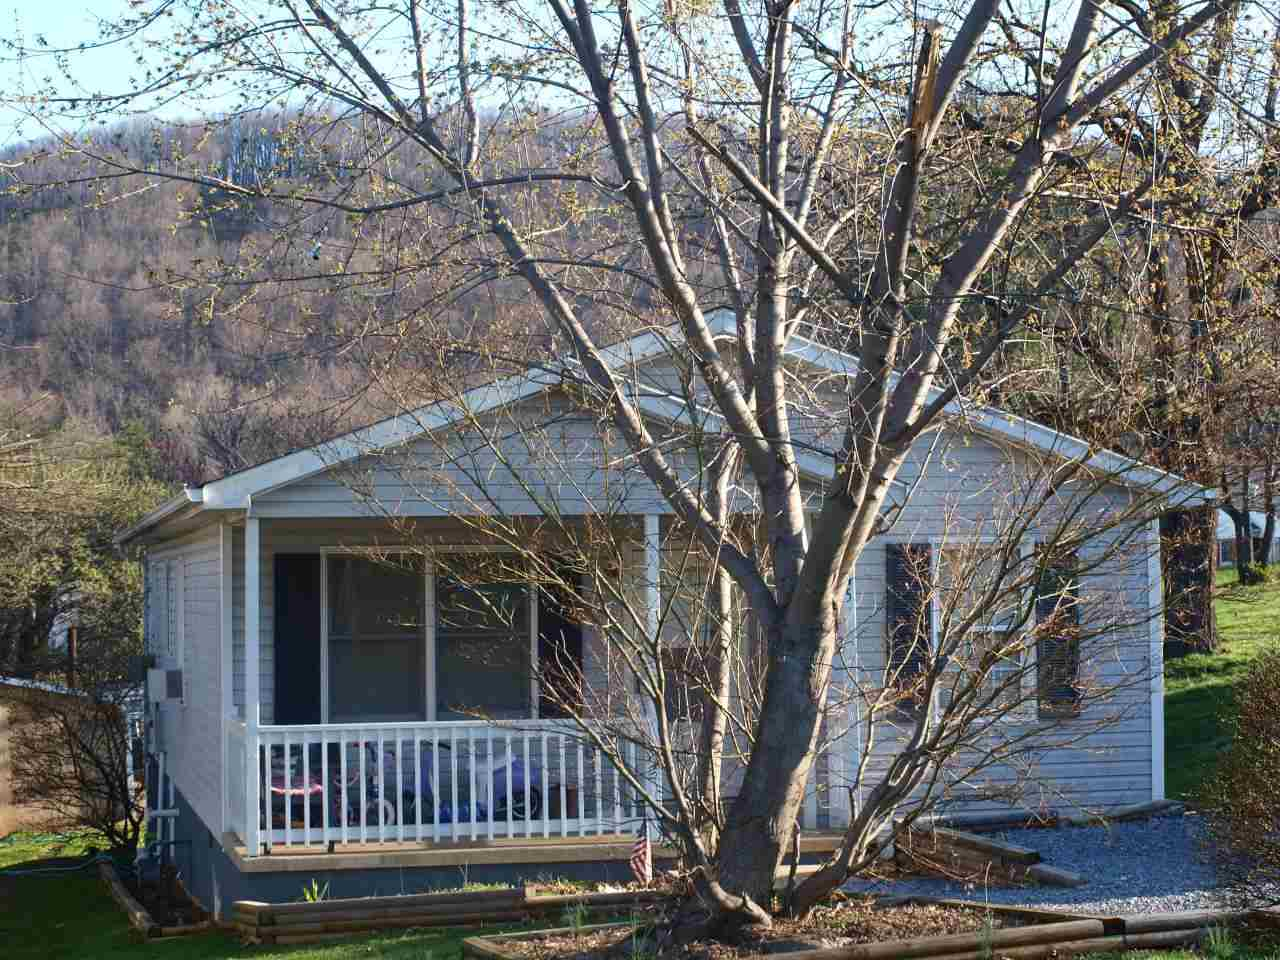 $172,500 - 3Br/2Ba -  for Sale in Mary Grey Court, Staunton